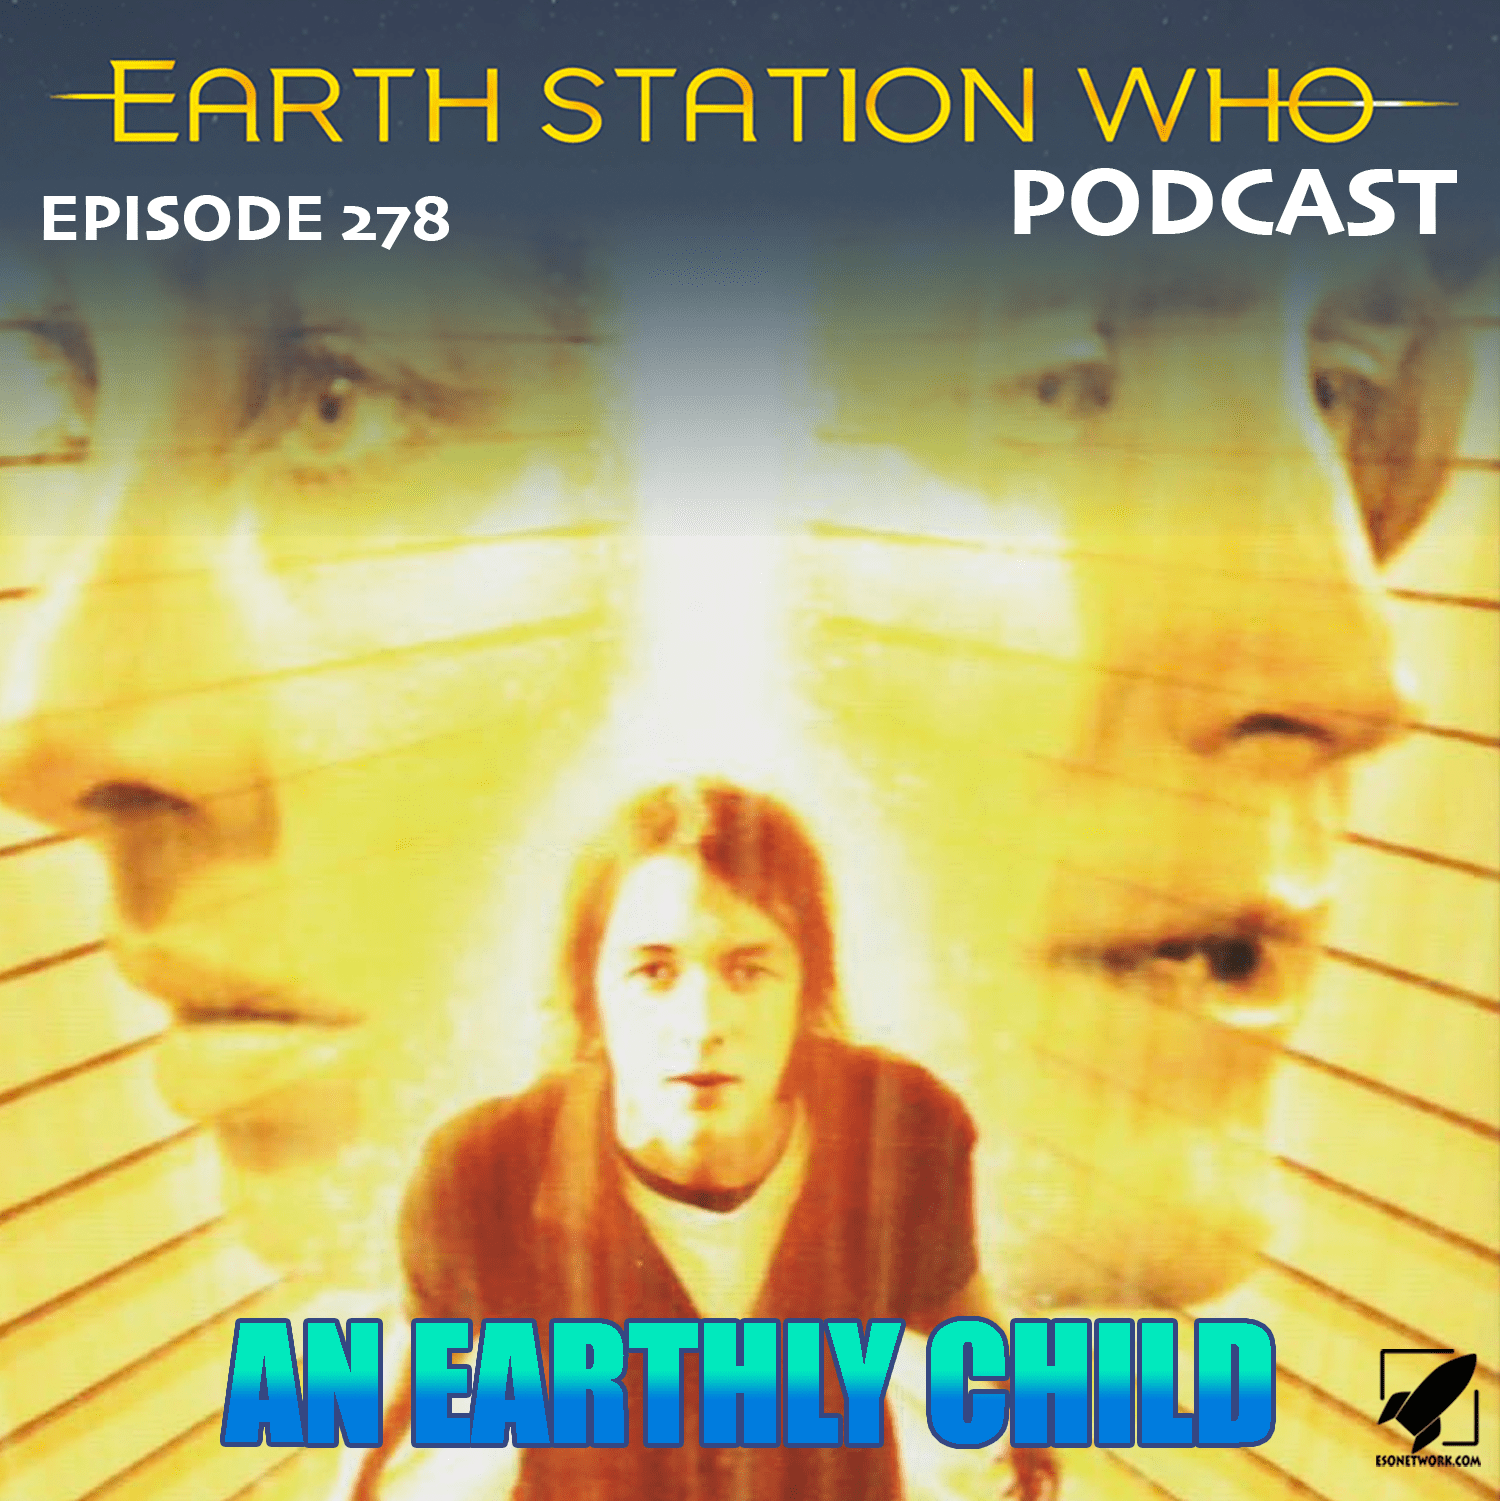 Earth Station Who - An Earthly Child